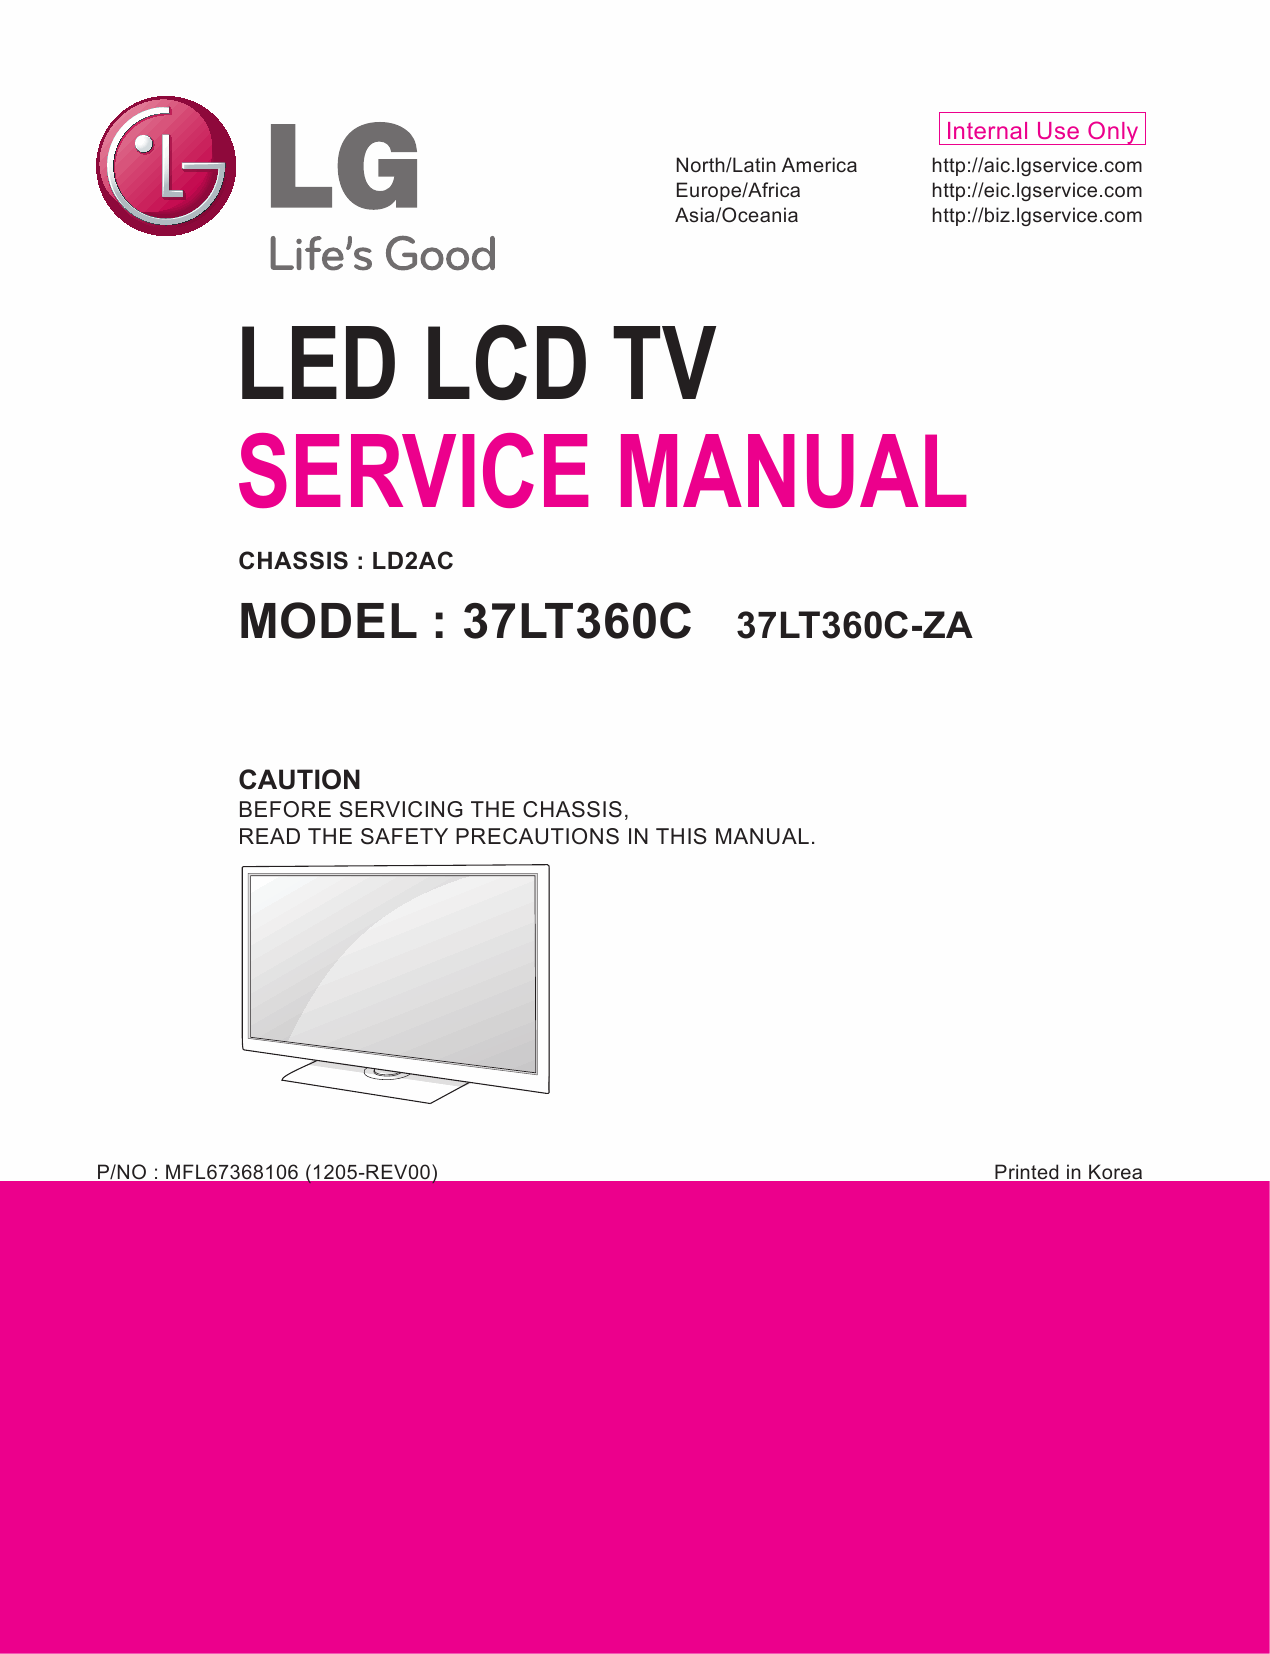 LG_LED_TV_37LT360C_Service_Manual_2012_Qmanual.com-1